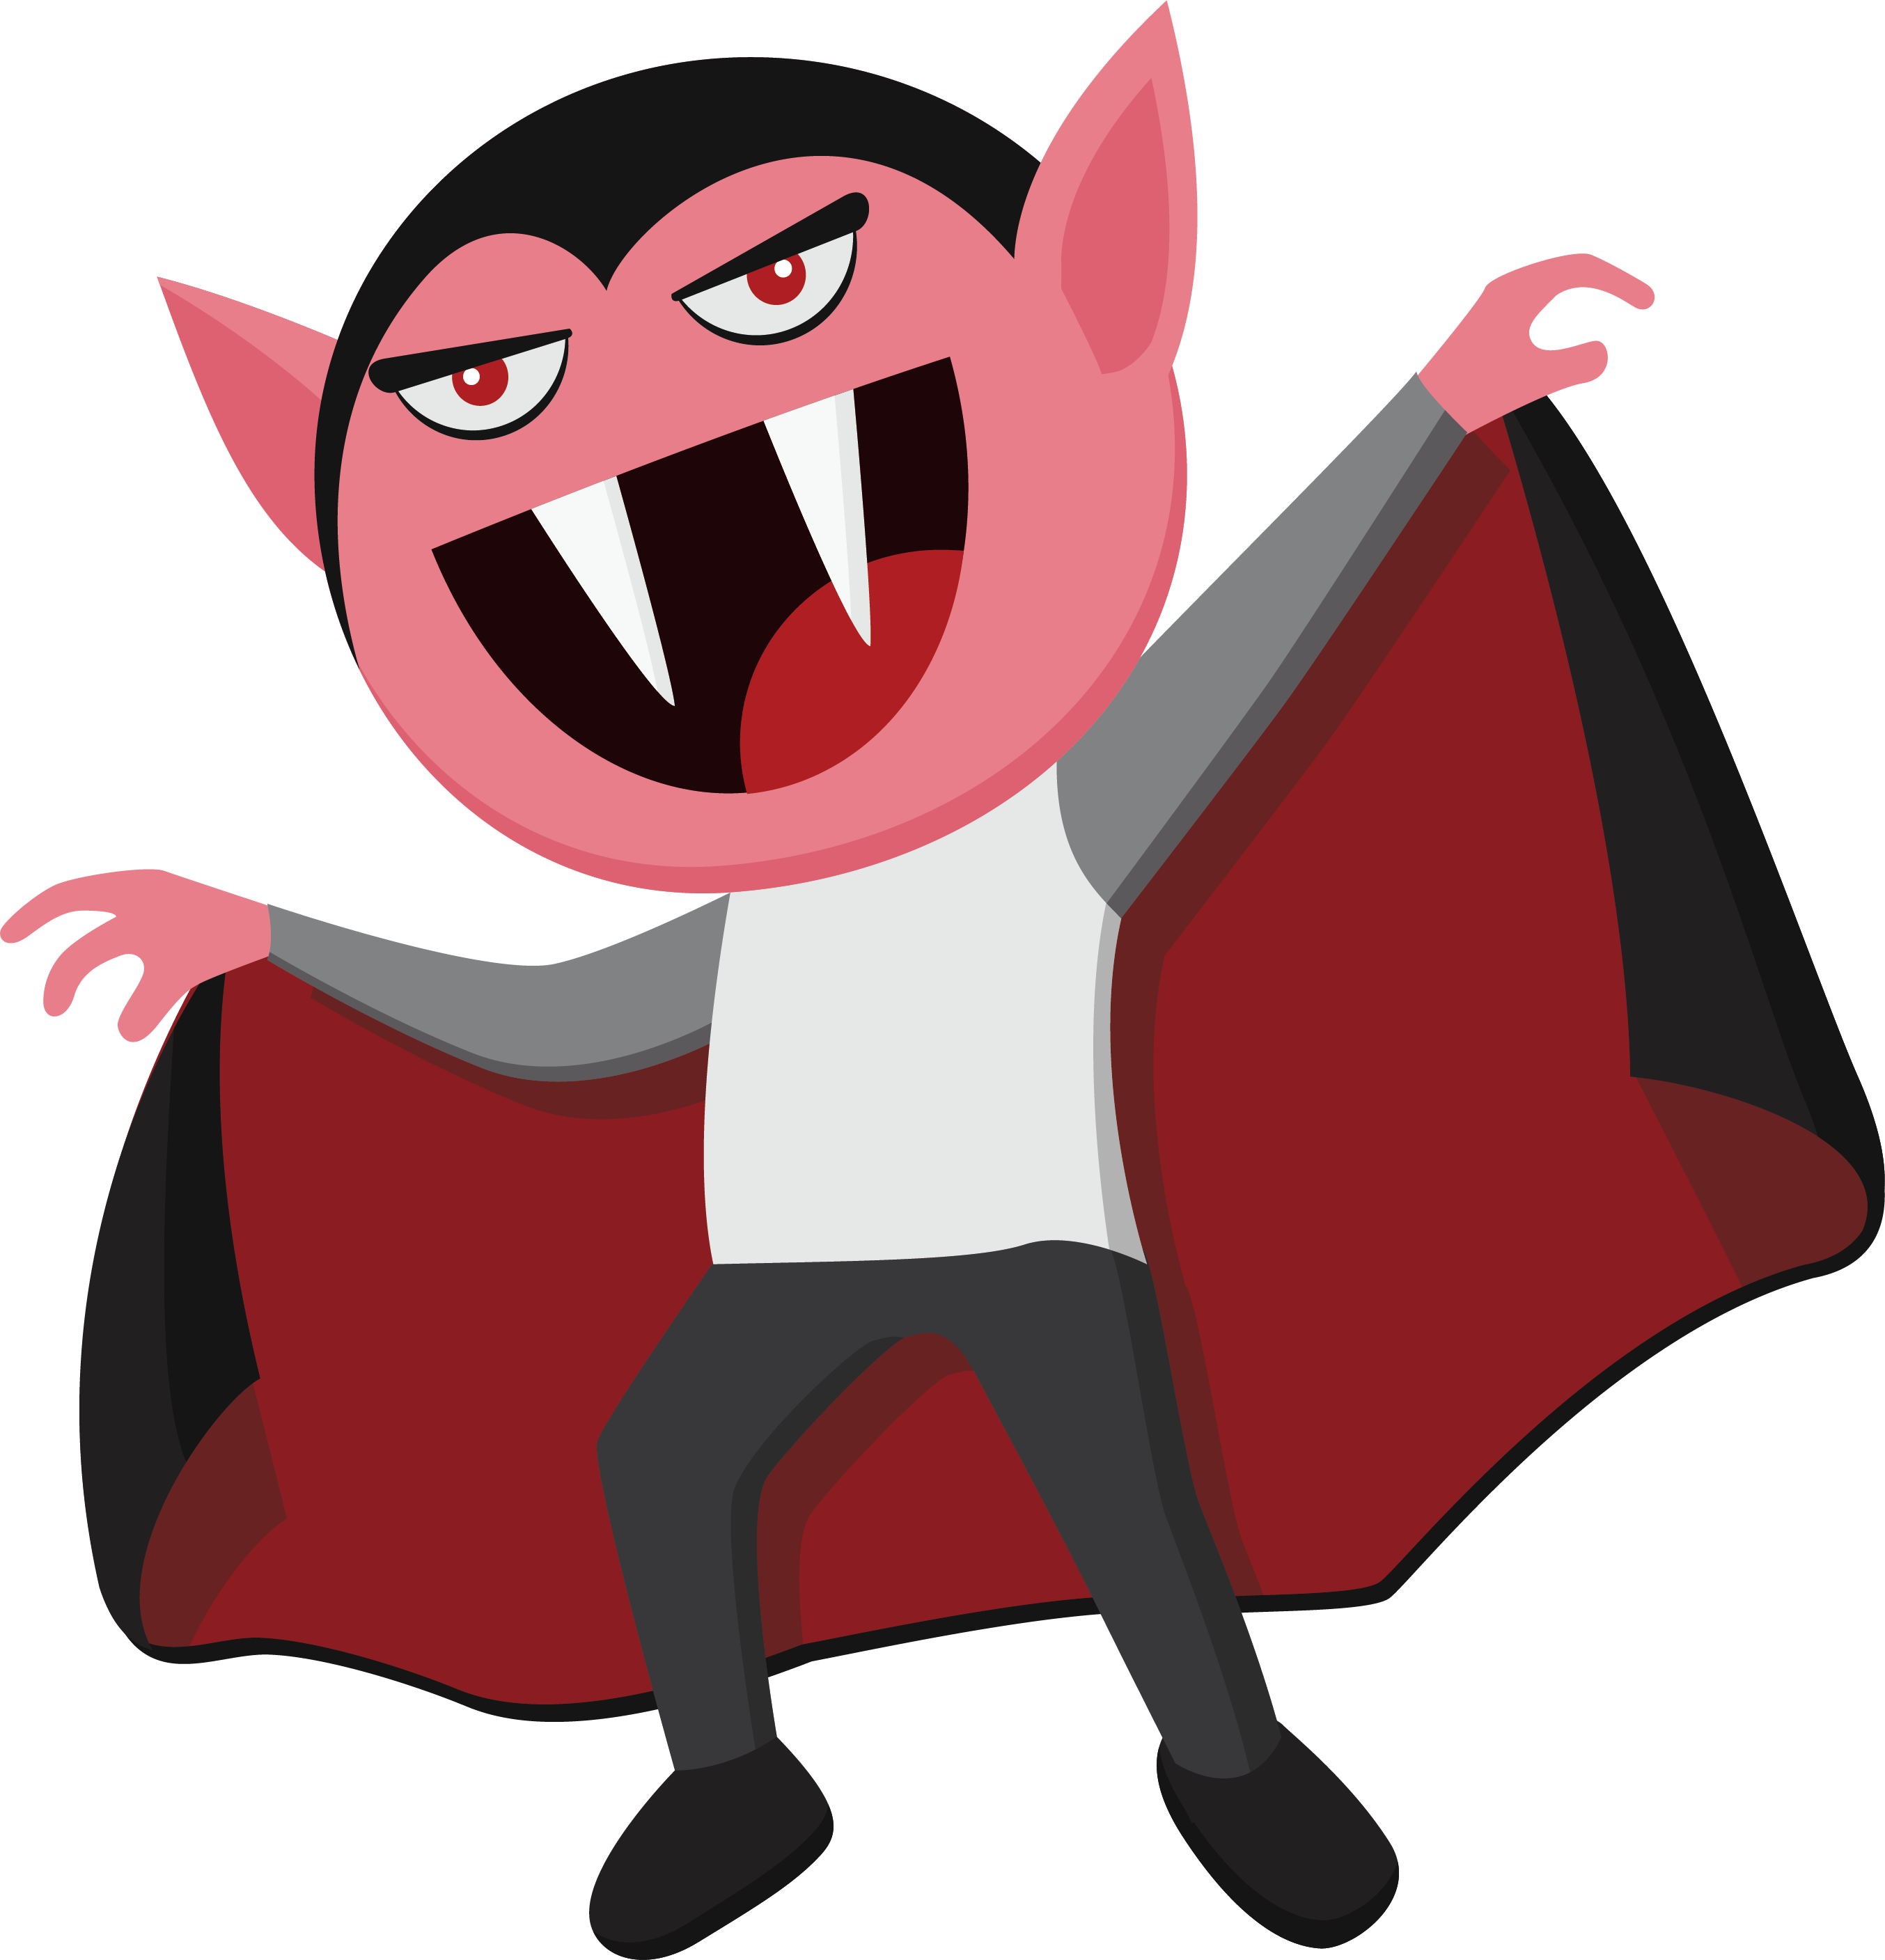 Vampire fangs high res png. Fang tusk clip art